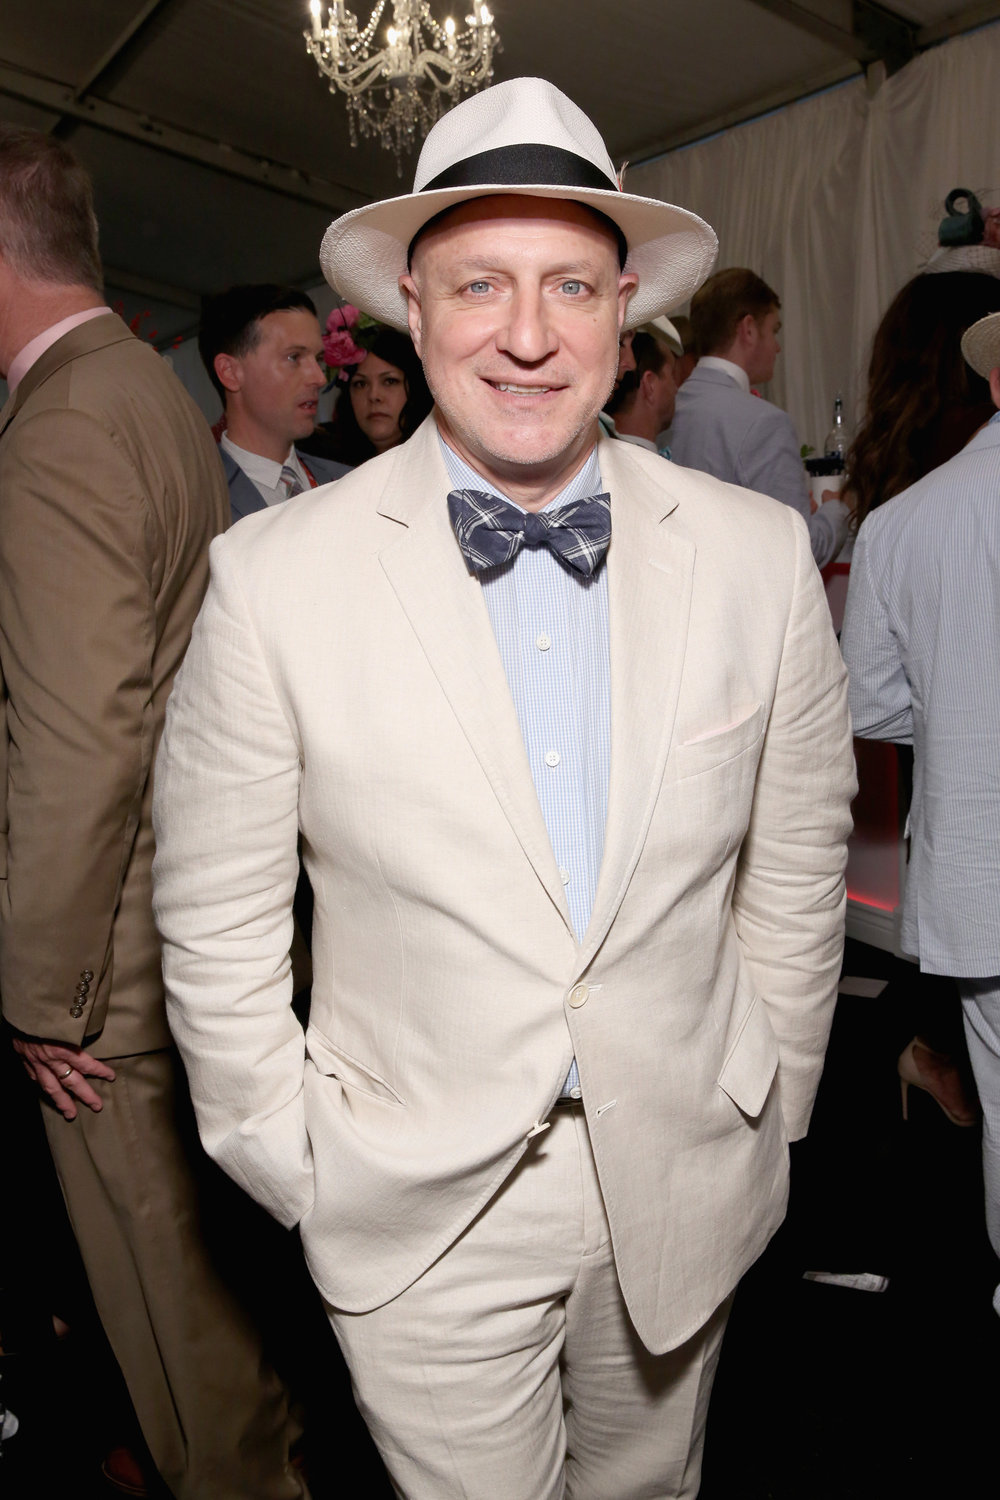 LOUISVILLE, KY - MAY 05:  Chef Tom Colicchio attends Kentucky Derby 144 on May 5, 2018 in Louisville, Kentucky.  (Photo by Robin Marchant/Getty Images for Churchill Downs) *** Local Caption *** Tom Colicchio